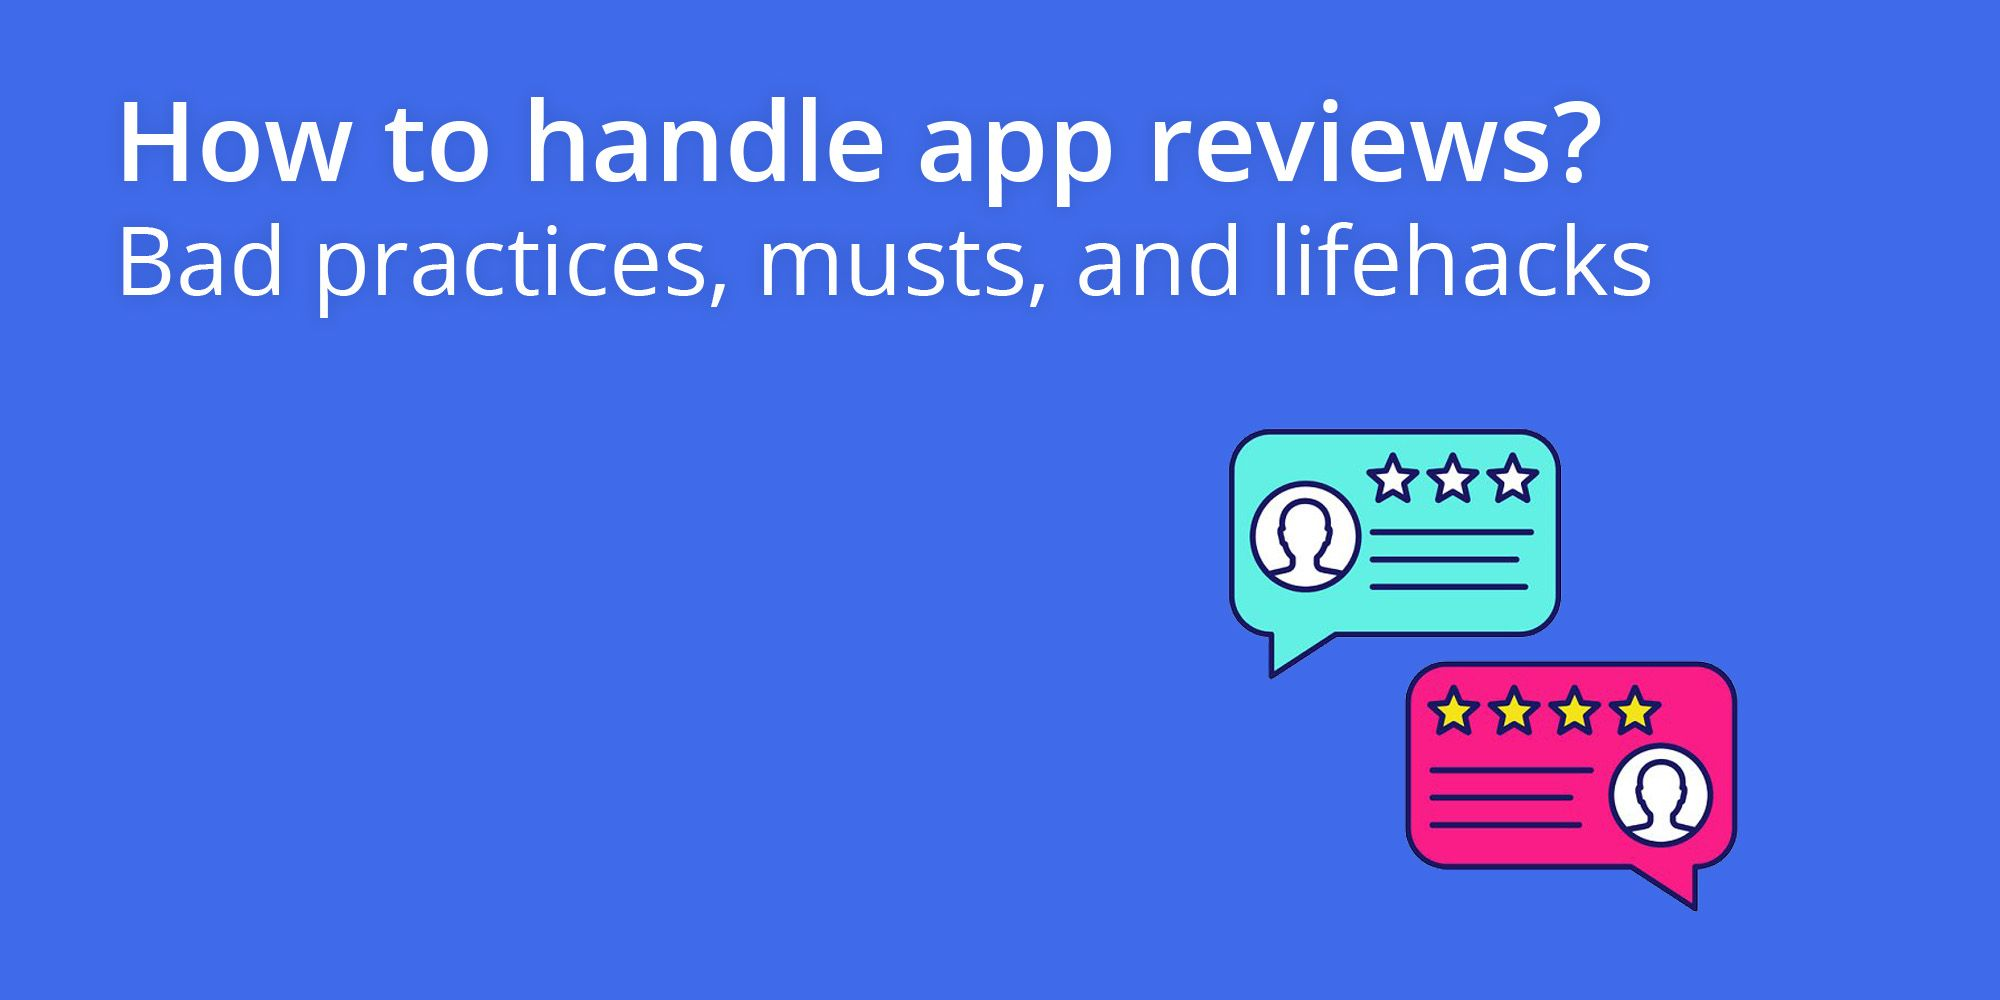 How to handle app reviews? Bad practices, musts, and lifehacks